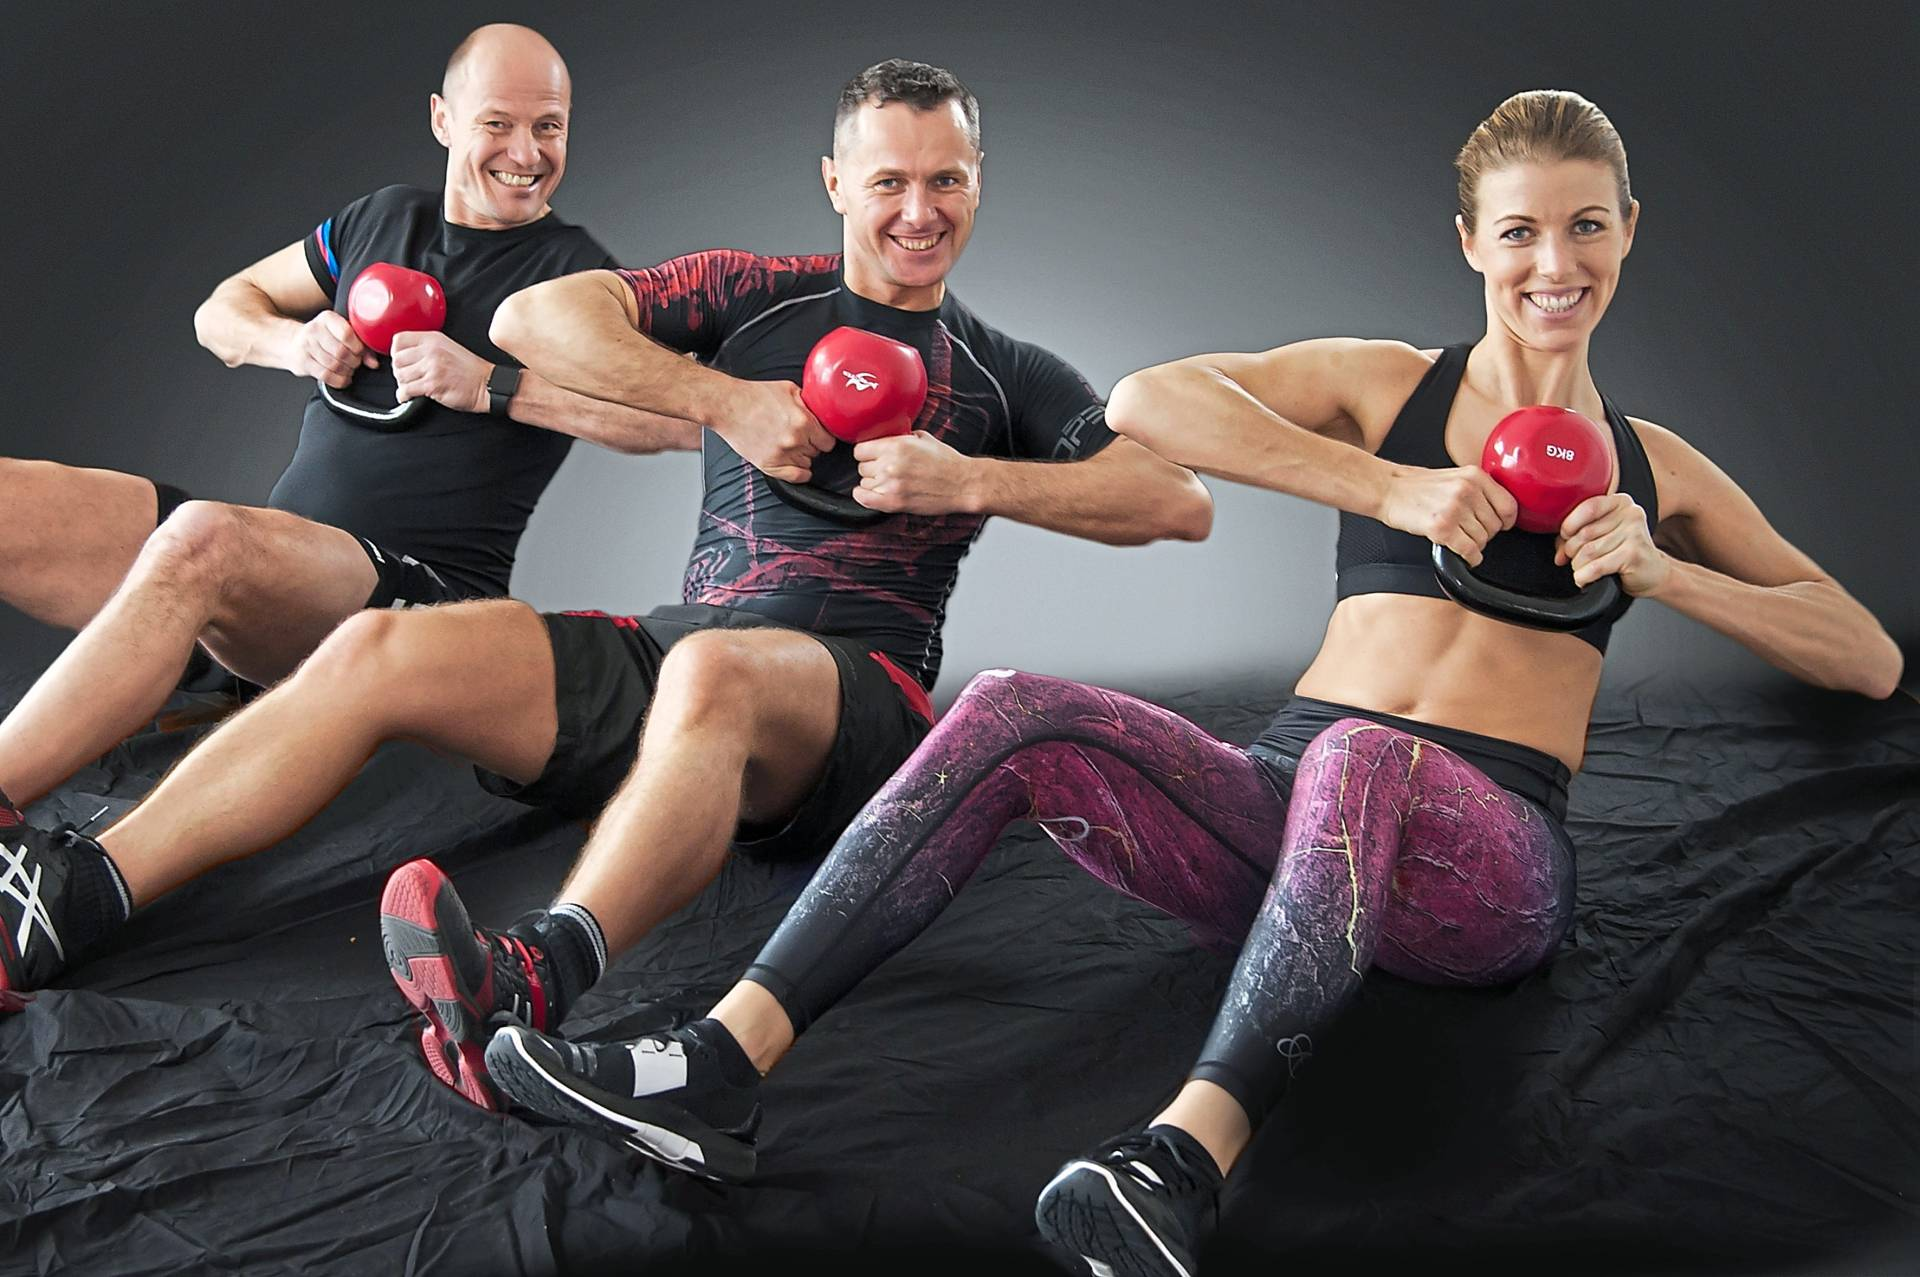 Russian twists are great for toning the abdominal muscles.